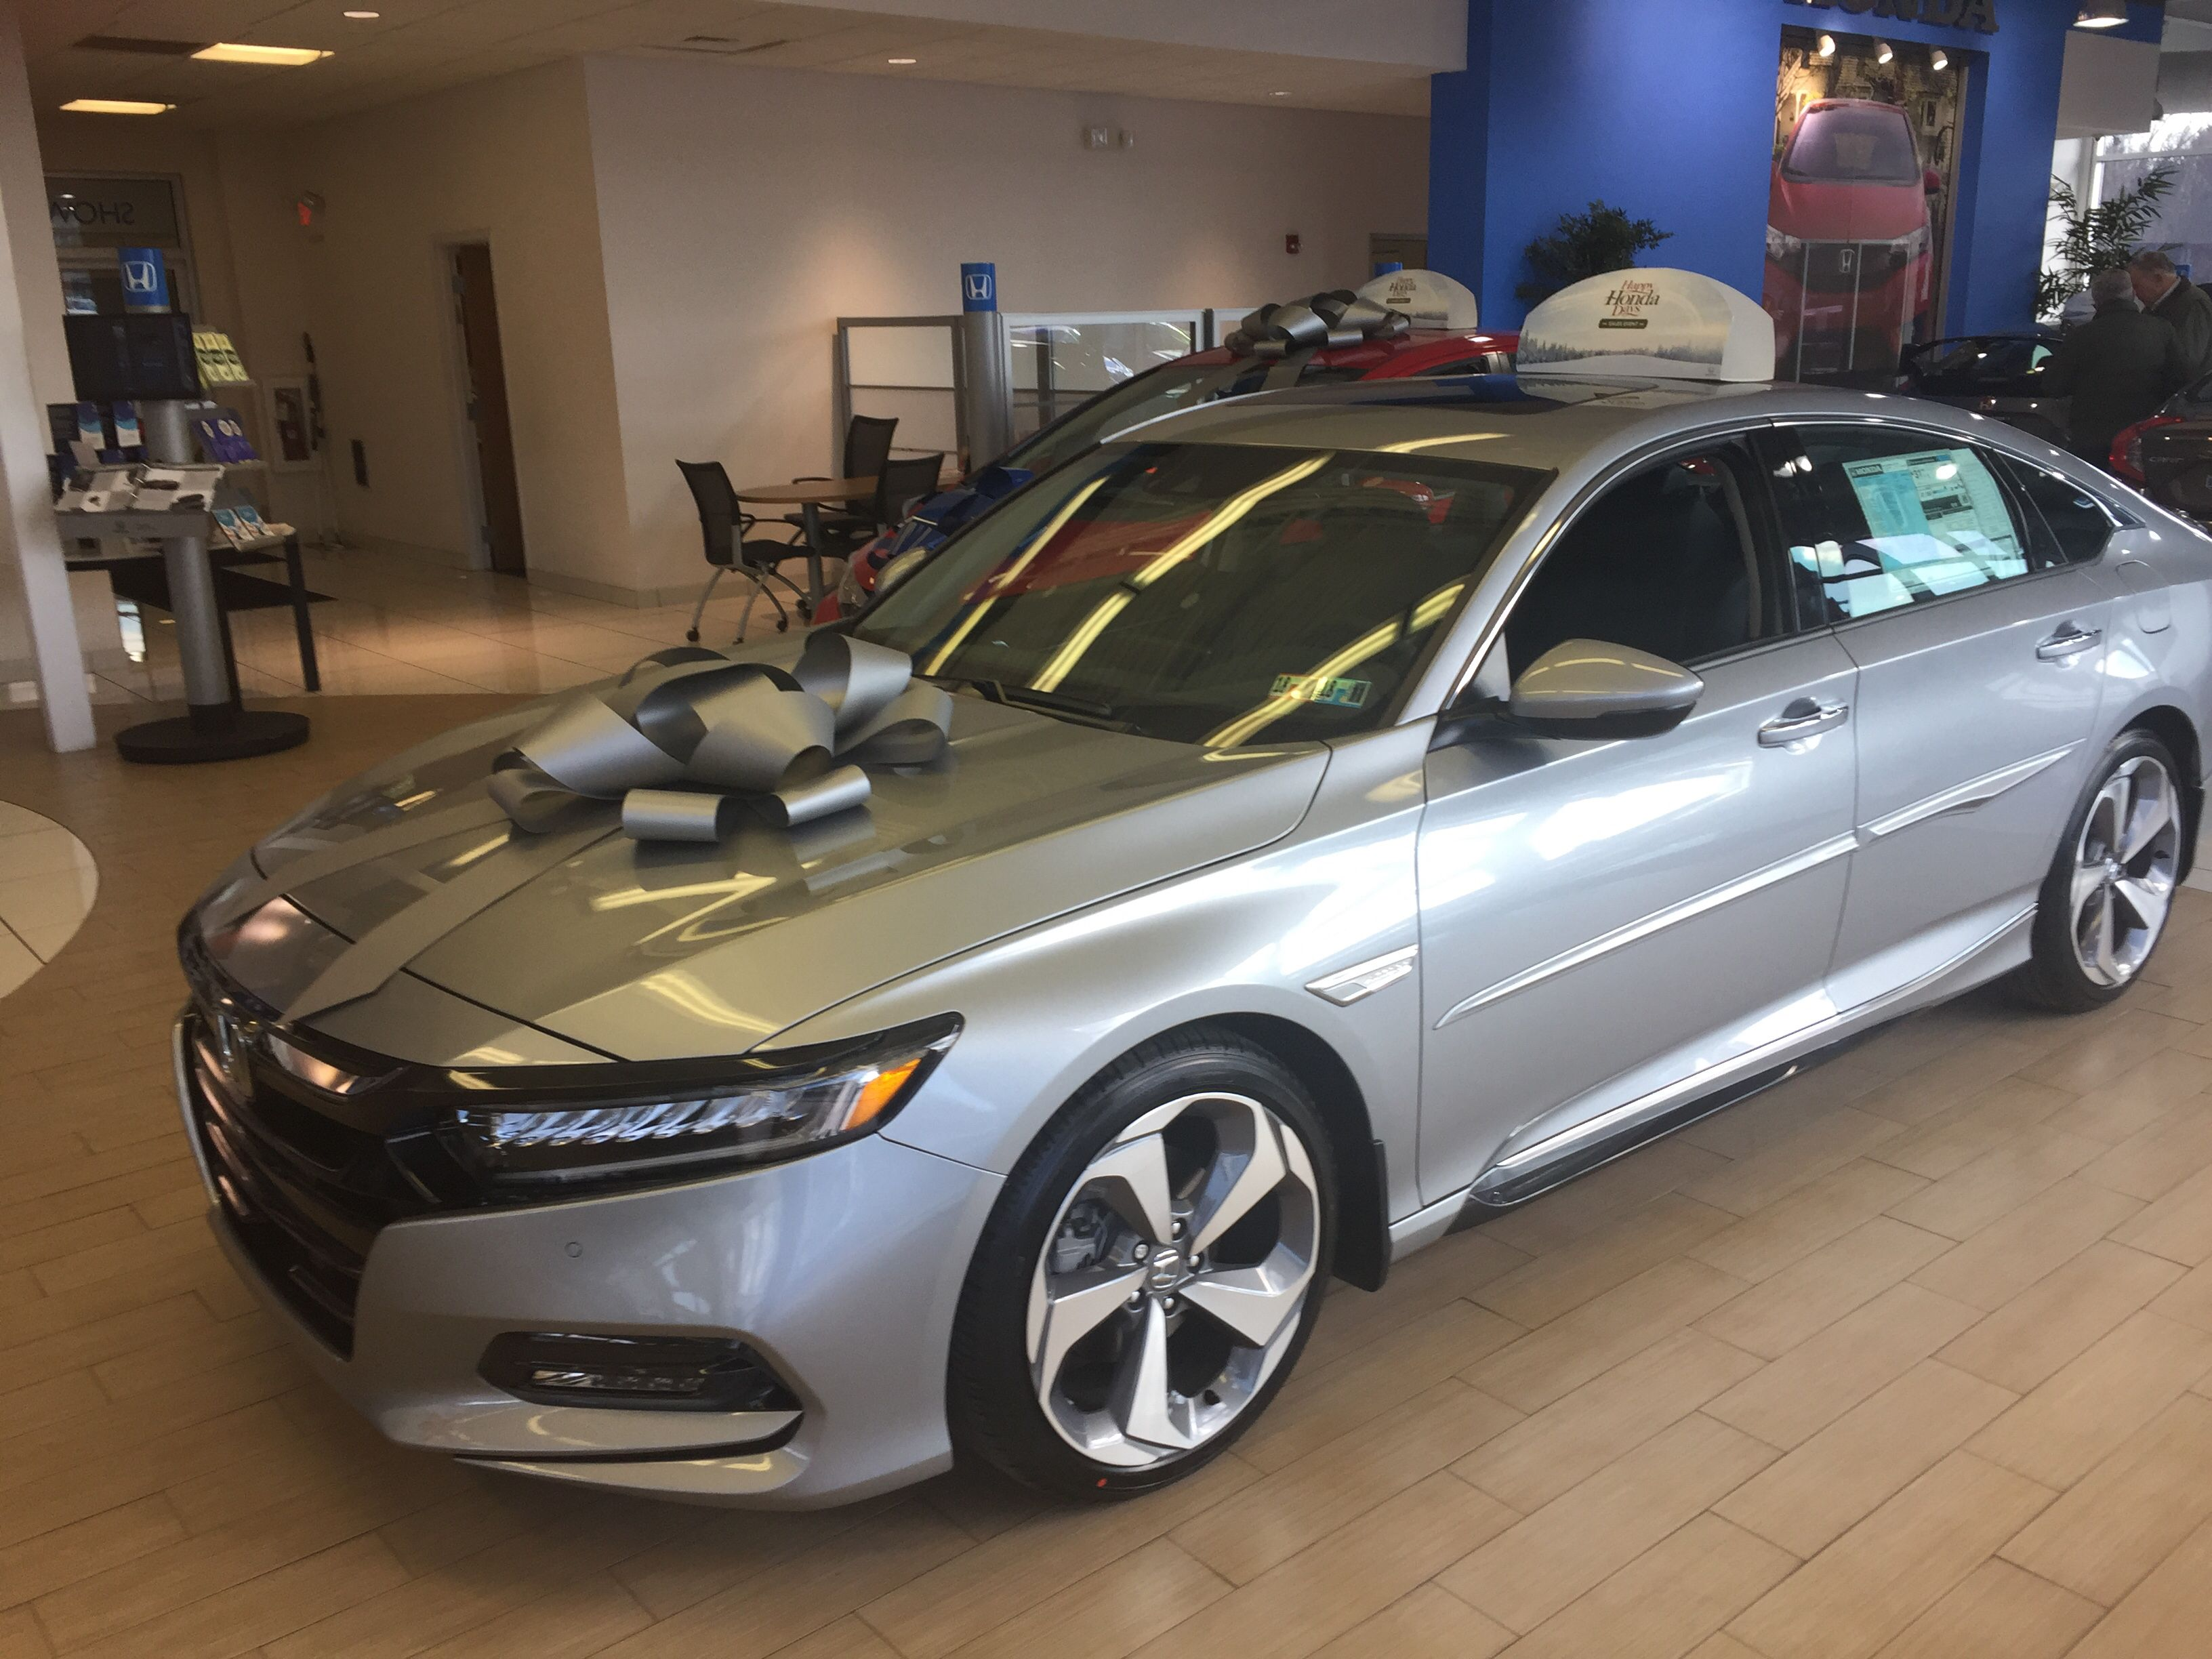 Pin by Gregory Repice on 2018 Honda Accord Accessories